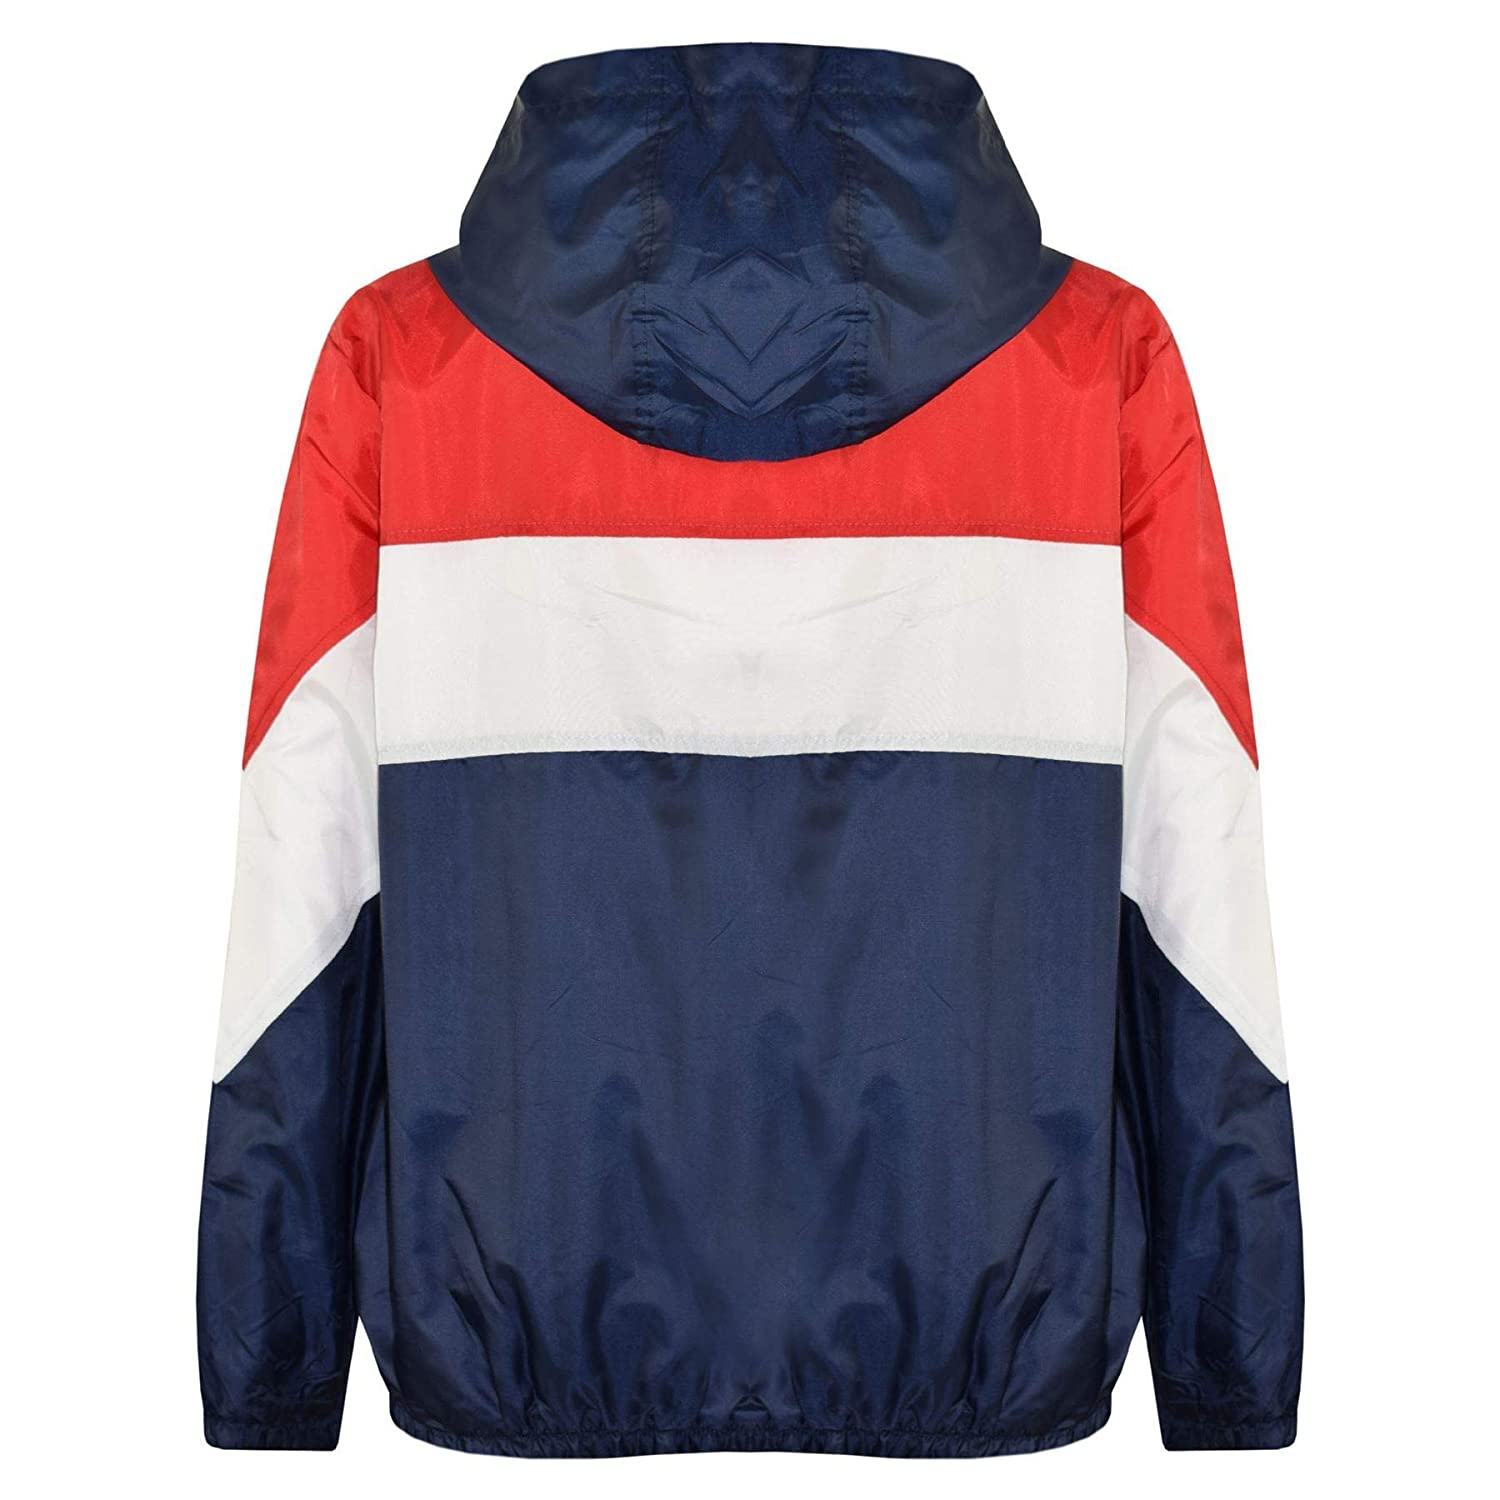 A2Z 4 Kids/® Kids Girls Boys PU Raincoat Jackets Designers Navy Windbreaker Waterproof Cagoule Hooded Rainmac Shower Resistant Coats Age 5 6 7 8 9 10 11 12 13 Years